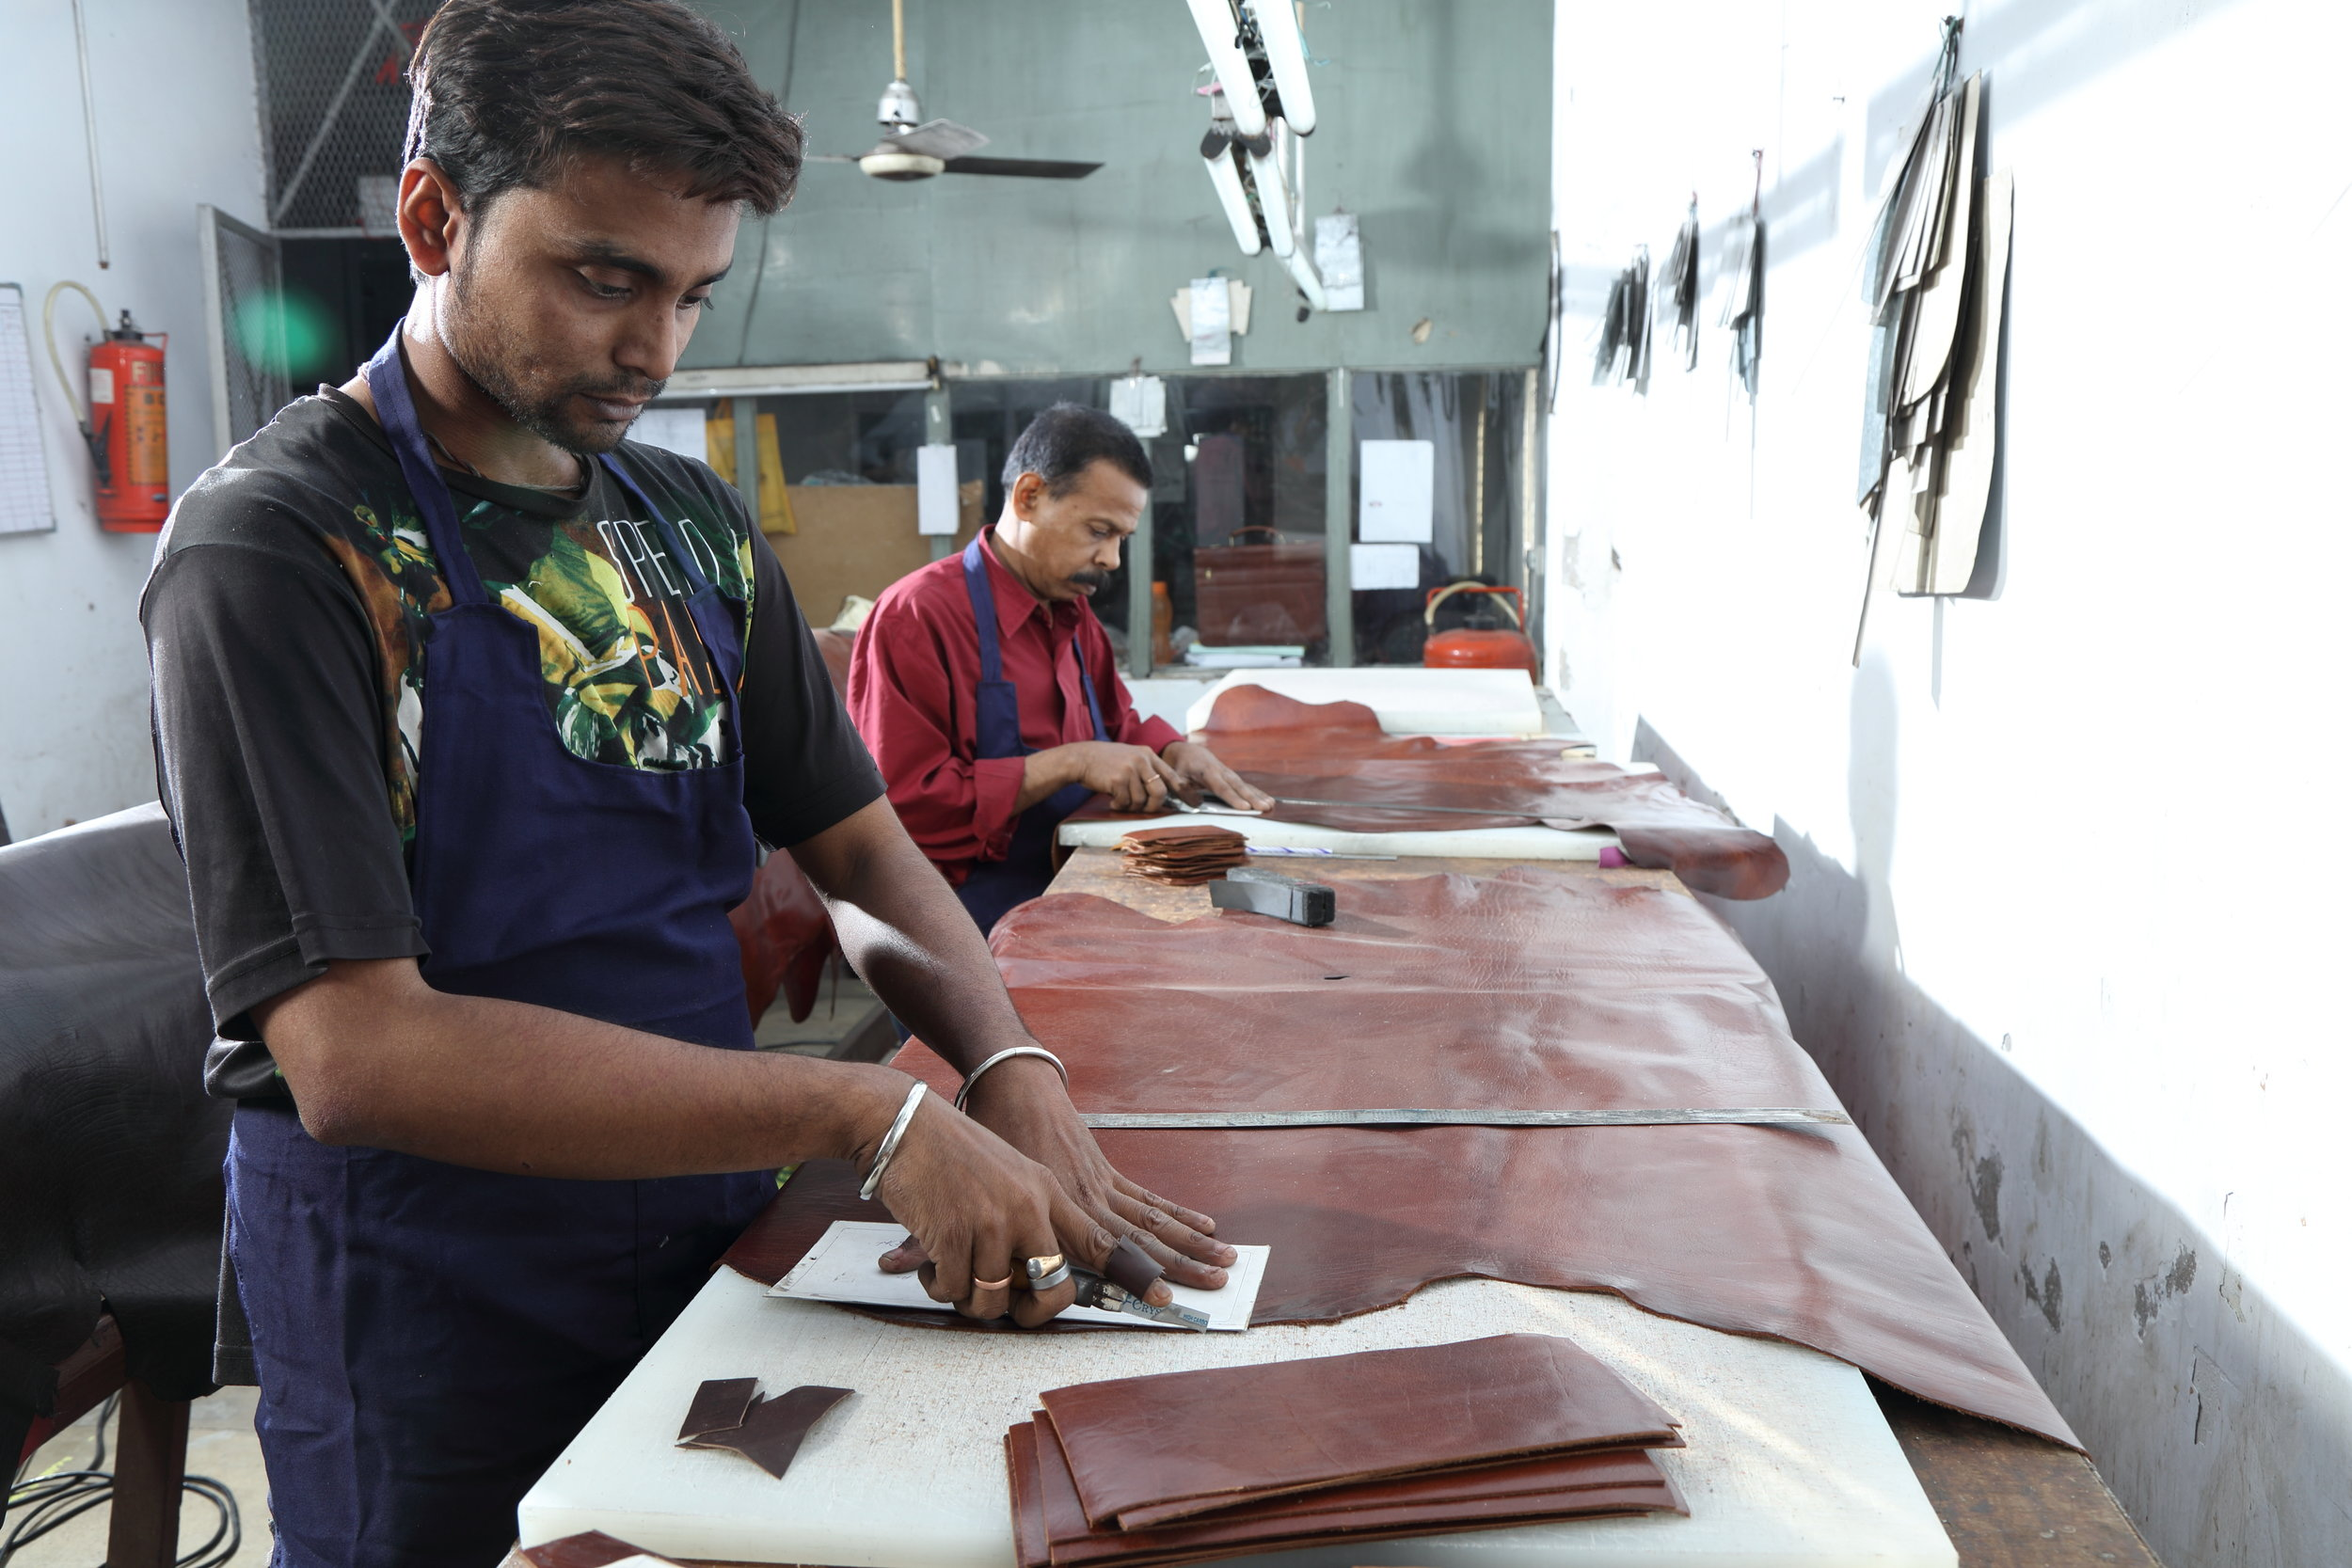 hand cutting - Once the orders are placed the merchandiser orders the leather and materials. The leather/ materials come into the stores, are measured and checked. The leather is sent for hand cutting or clicking (cutting by machines). The cut parts are counted, inspected and sent for splitting ( the  parts are split and made thinner to a pre -determined gauge for easier stitching). Materials are likewise checked, measured, cut and made ready for production.